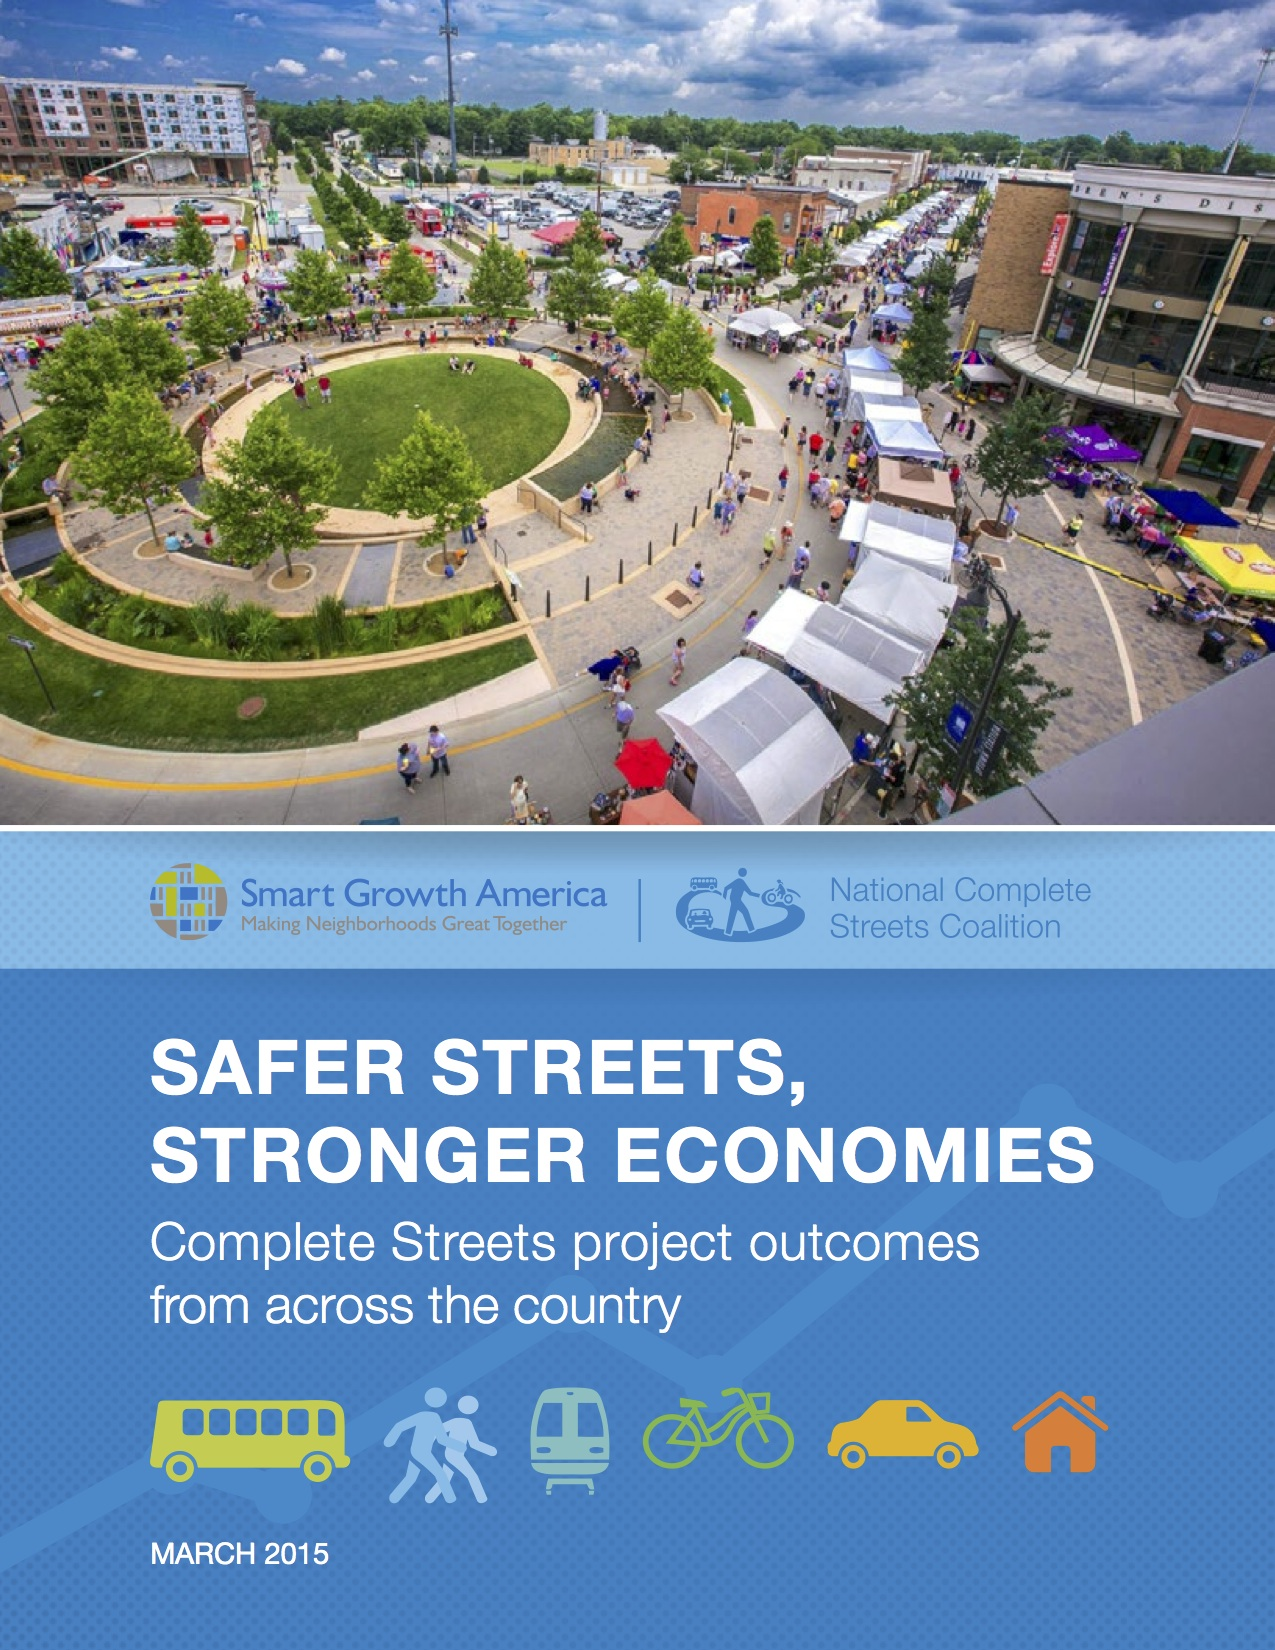 Safer Streets, Stronger Economies